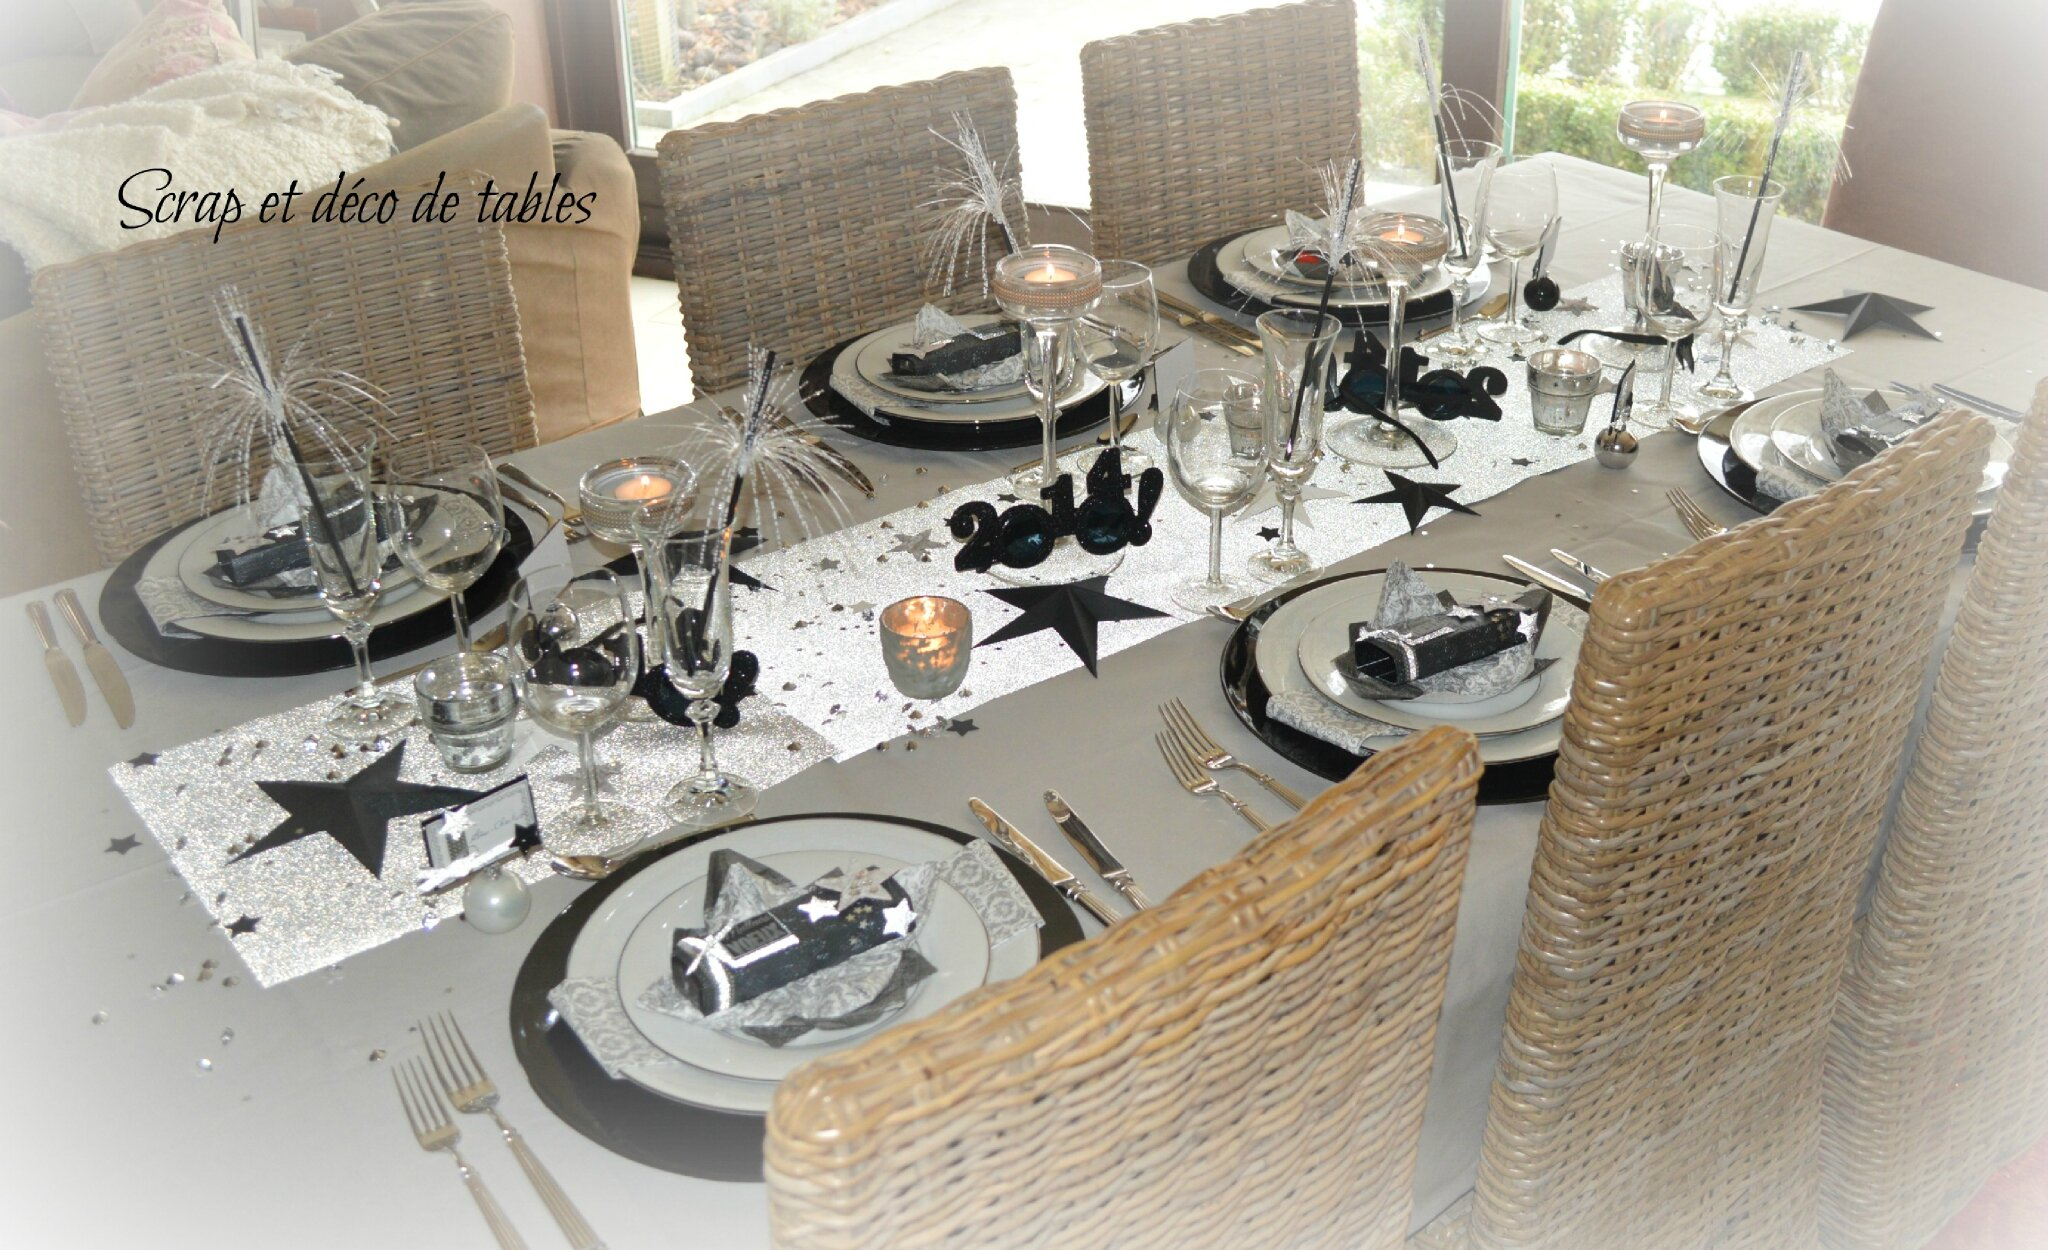 Deco de tables nouvel an 2014 scrap et d co de tables - Decoration table reveillon jour de l an ...